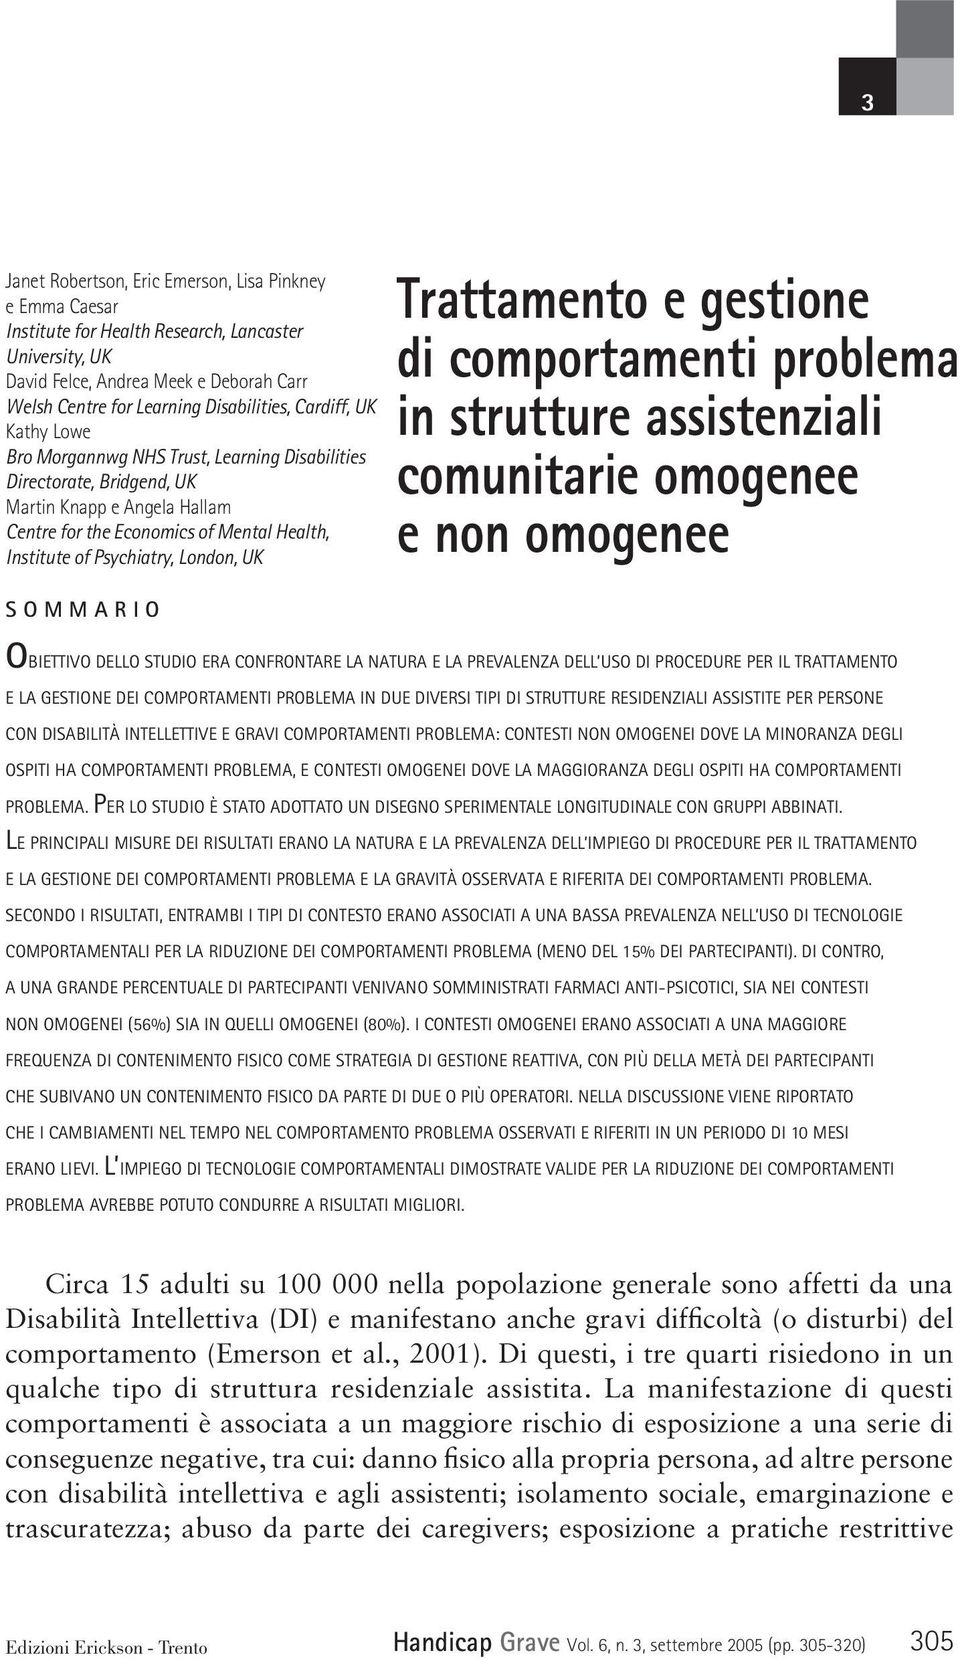 Knapp e Angela Hallam Centre for the Economics of Mental Health, Institute of Psychiatry, London, UK S O M M A R I O Trattamento e gestione di comportamenti problema in strutture assistenziali